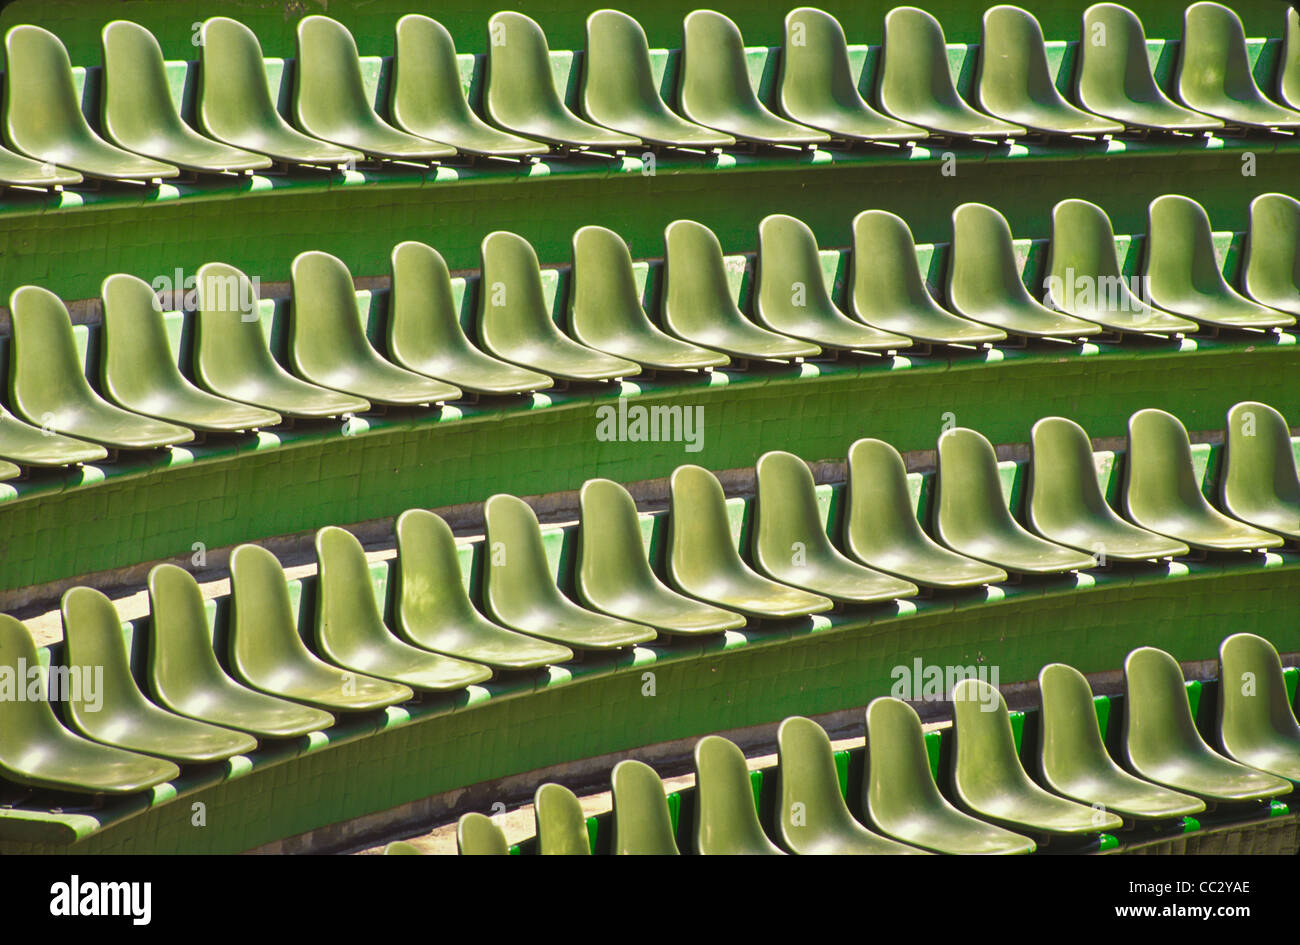 Mexico, Guerrero, Ixtapa, Rows of green seats - Stock Image